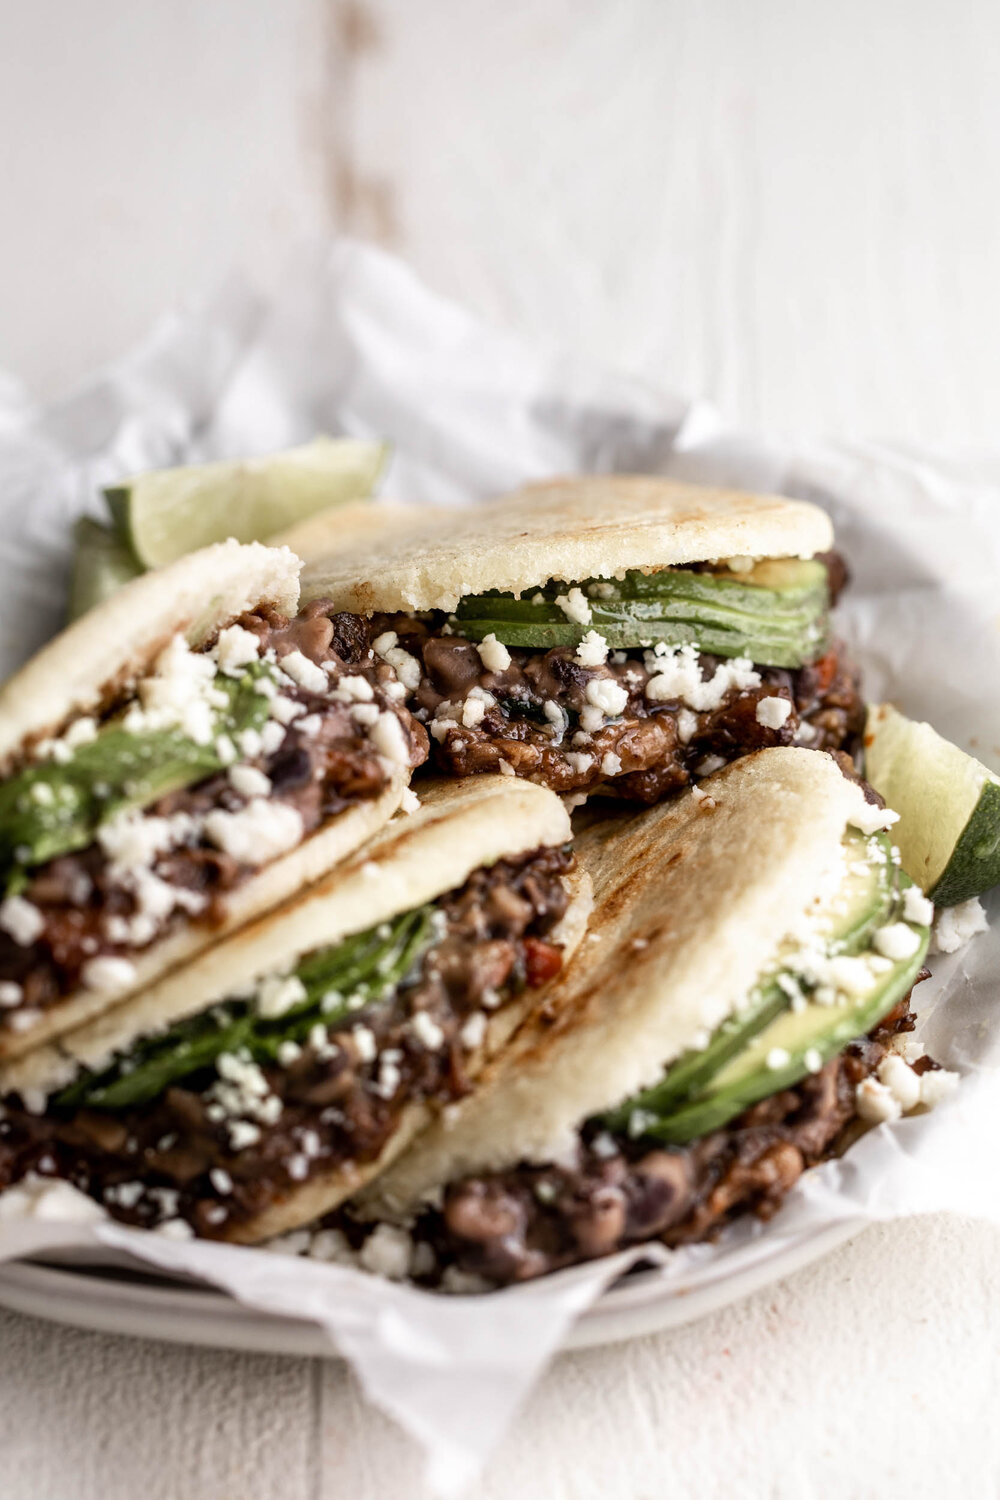 Braised Oxtail Arepas with avocado and black beans-7.jpg